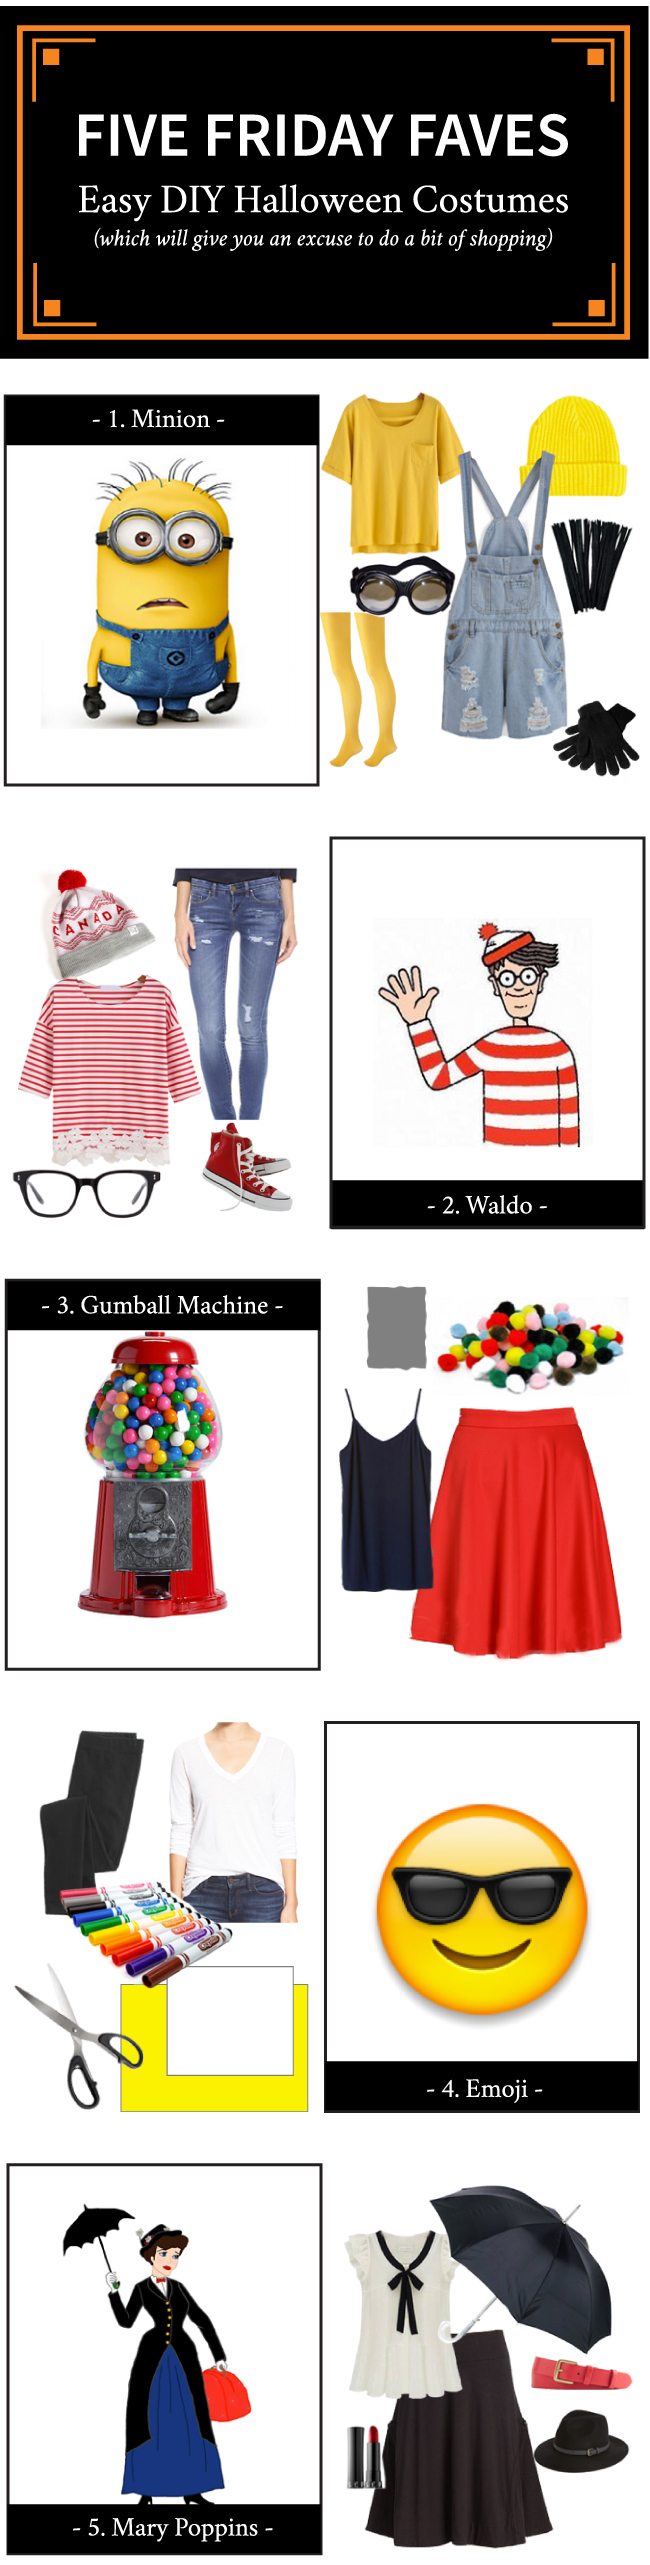 Five Friday Faves - Easy DIY Halloween Costumes